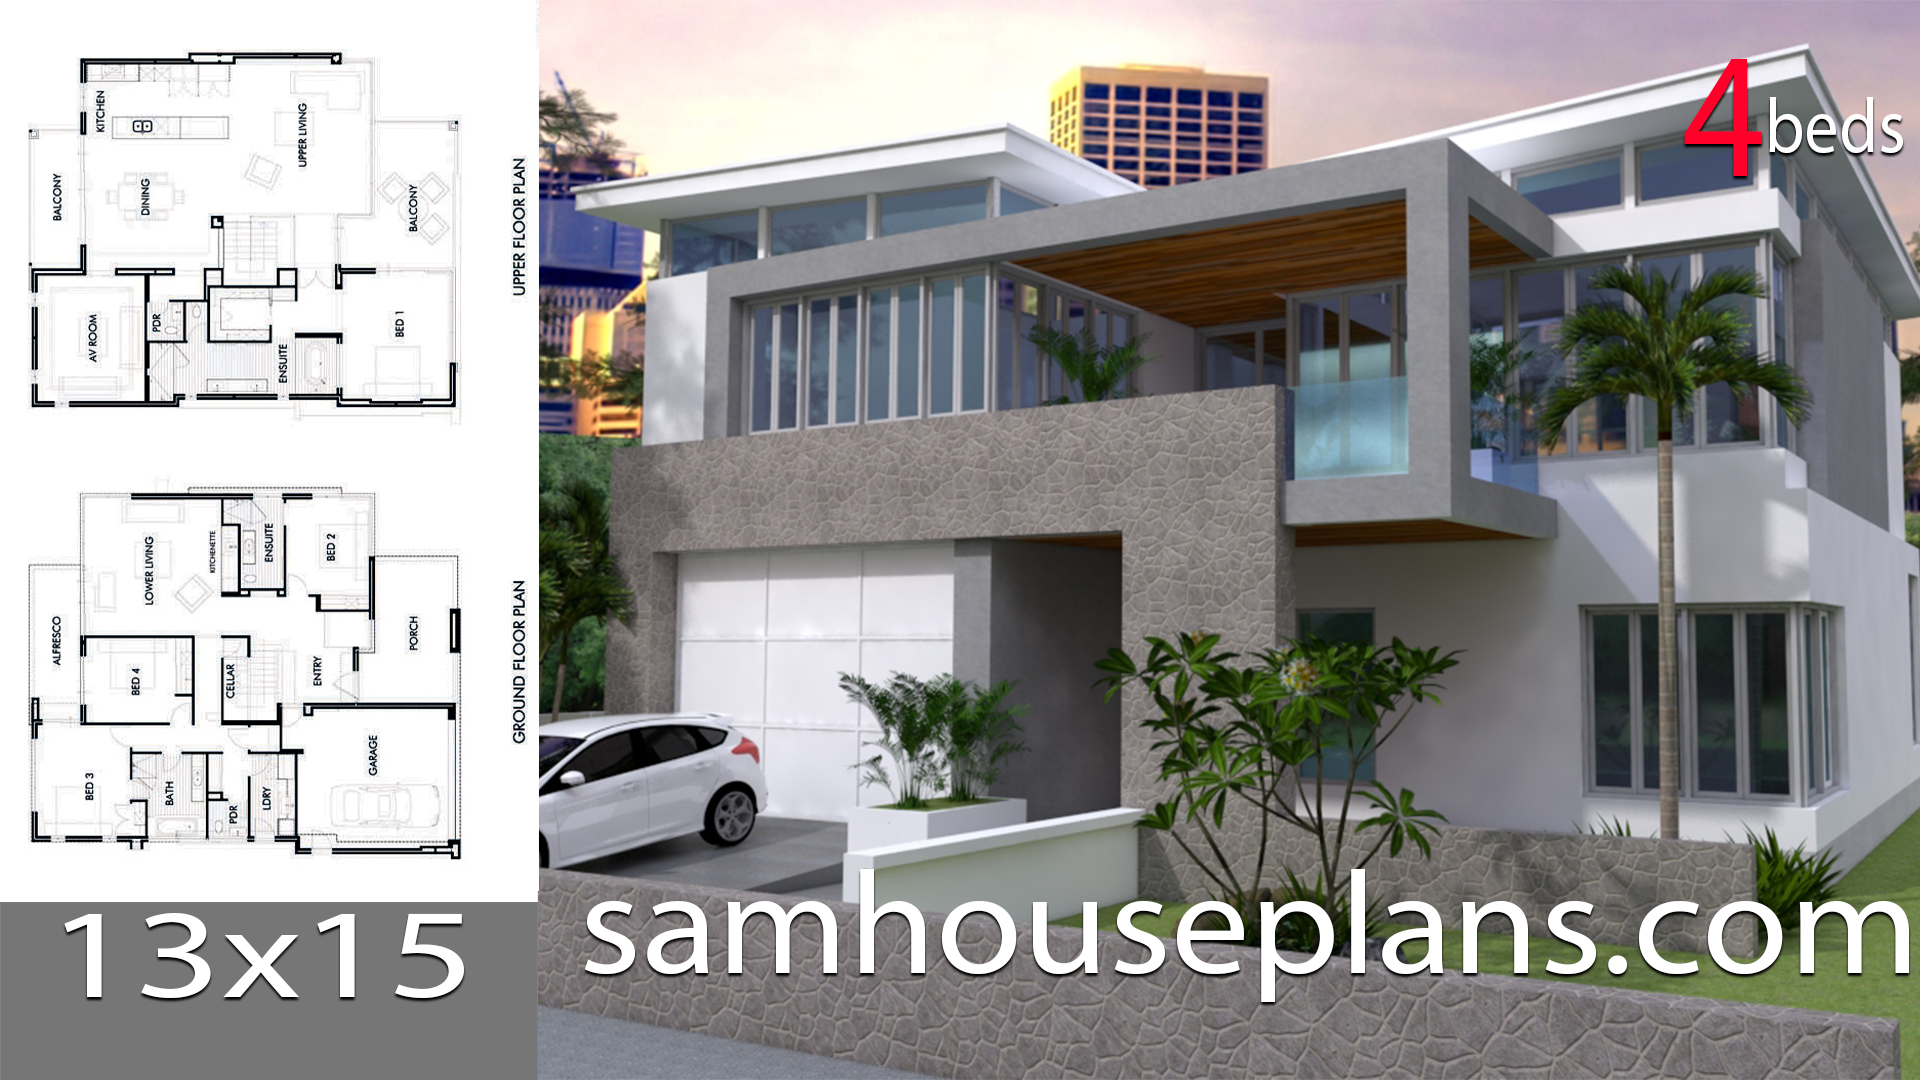 House Plans 13x15 With 4 Bedrooms Samhouseplans